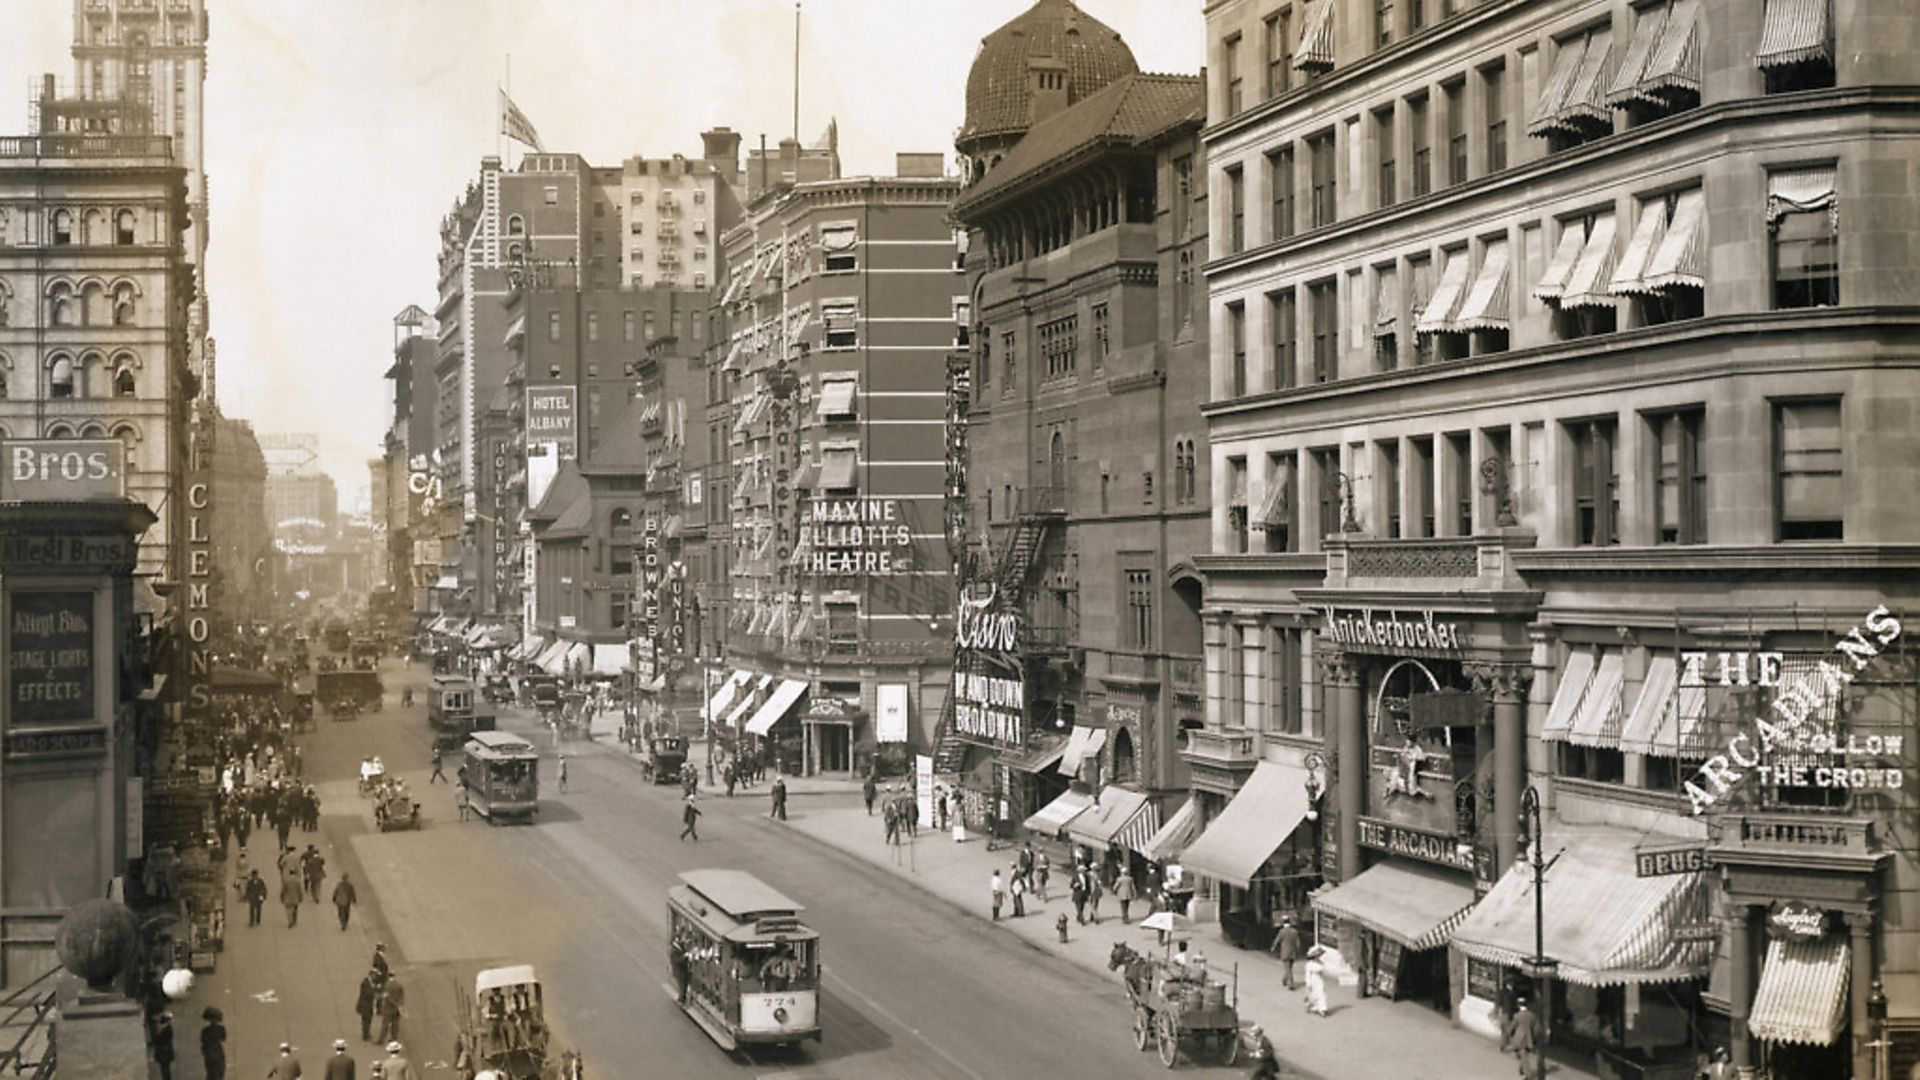 Carriages and Trolleys Along Broadway (Photo by �� Schenectady Museum; Hall of Electrical History Foundation/CORBIS/Corbis via Getty Images) - Credit: Corbis via Getty Images